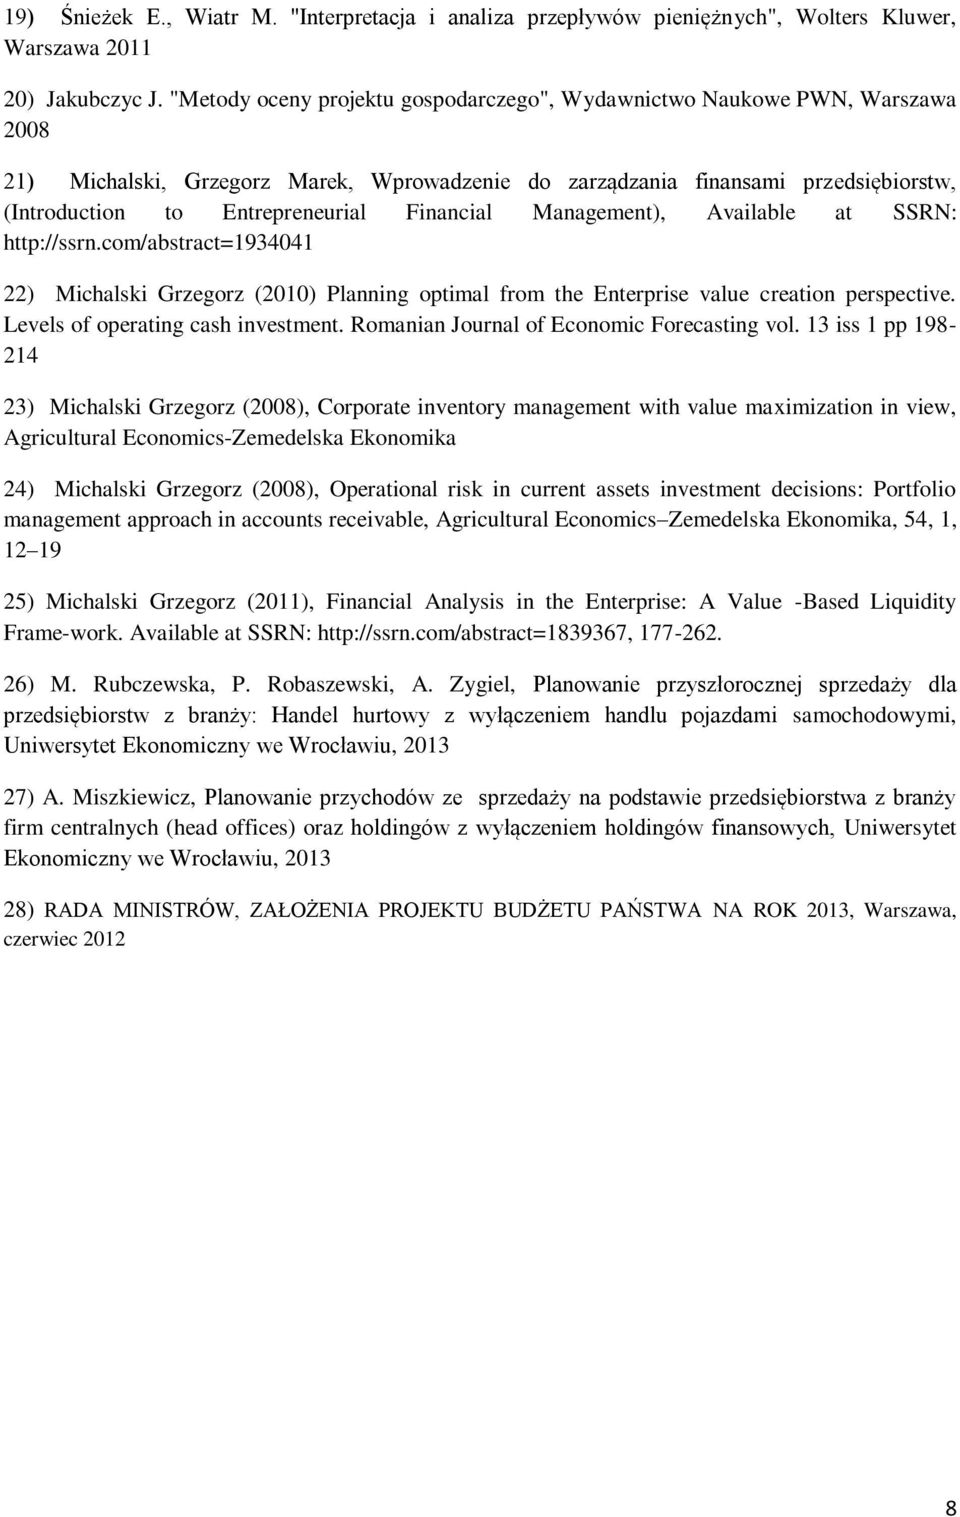 Financial Management), Available at SSRN: http://ssrn.com/abstract=1934041 22) Michalski Grzegorz (2010) Planning optimal from the Enterprise value creation perspective.